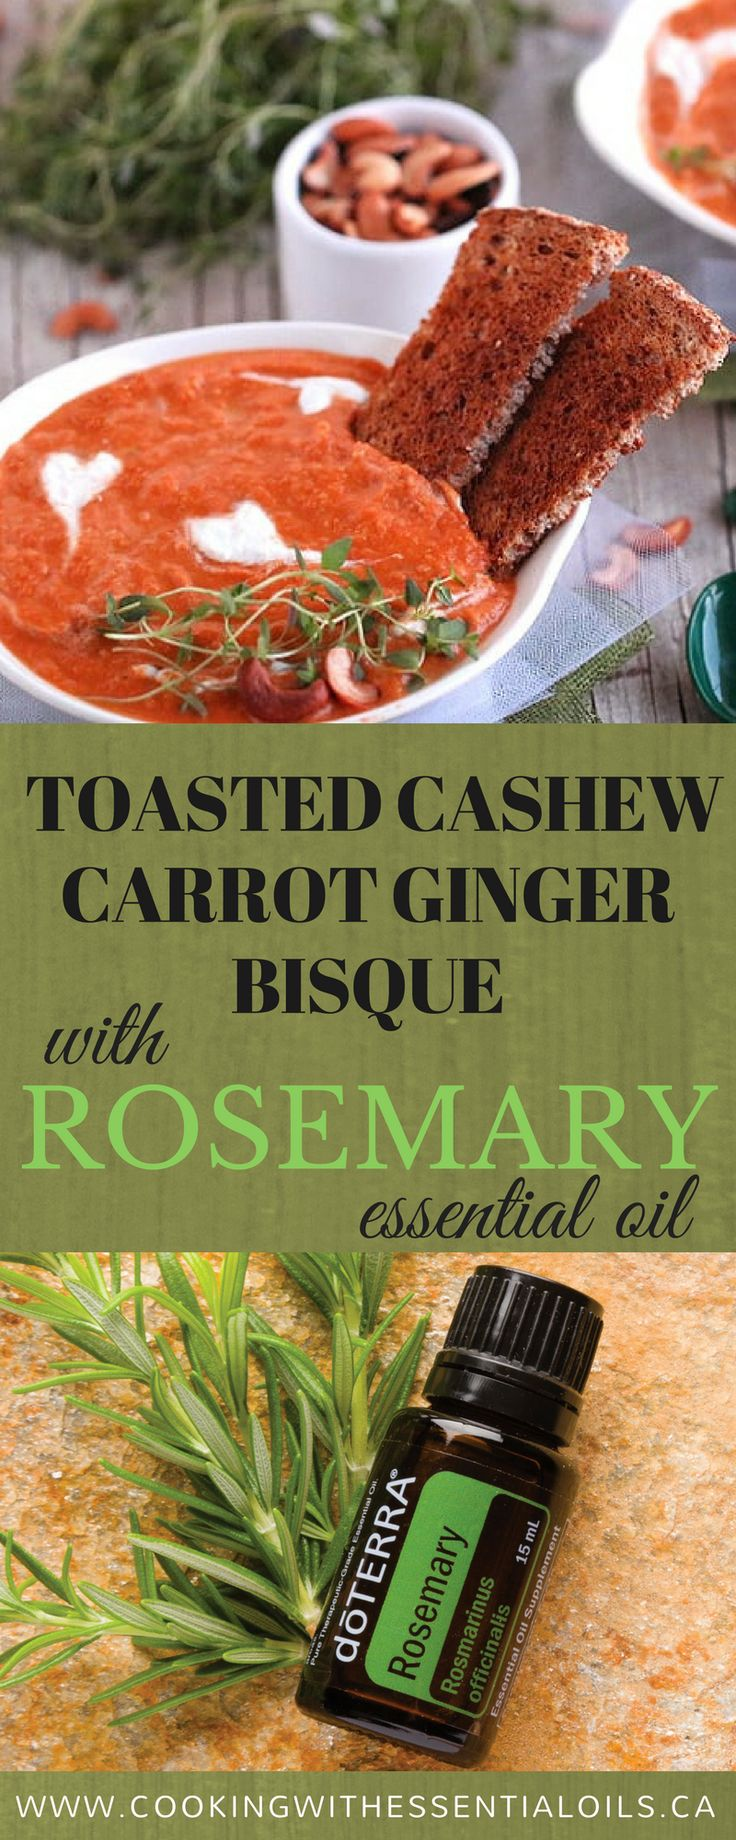 This article will feature a fellow food blogger who created a recipe using Rosemary Essential Oil. Deborah from Vegan Vigilante will share about her experience using essential oils in a recipe and also share the link to her post. #cookingwithessentialoils #rosemary #bisque